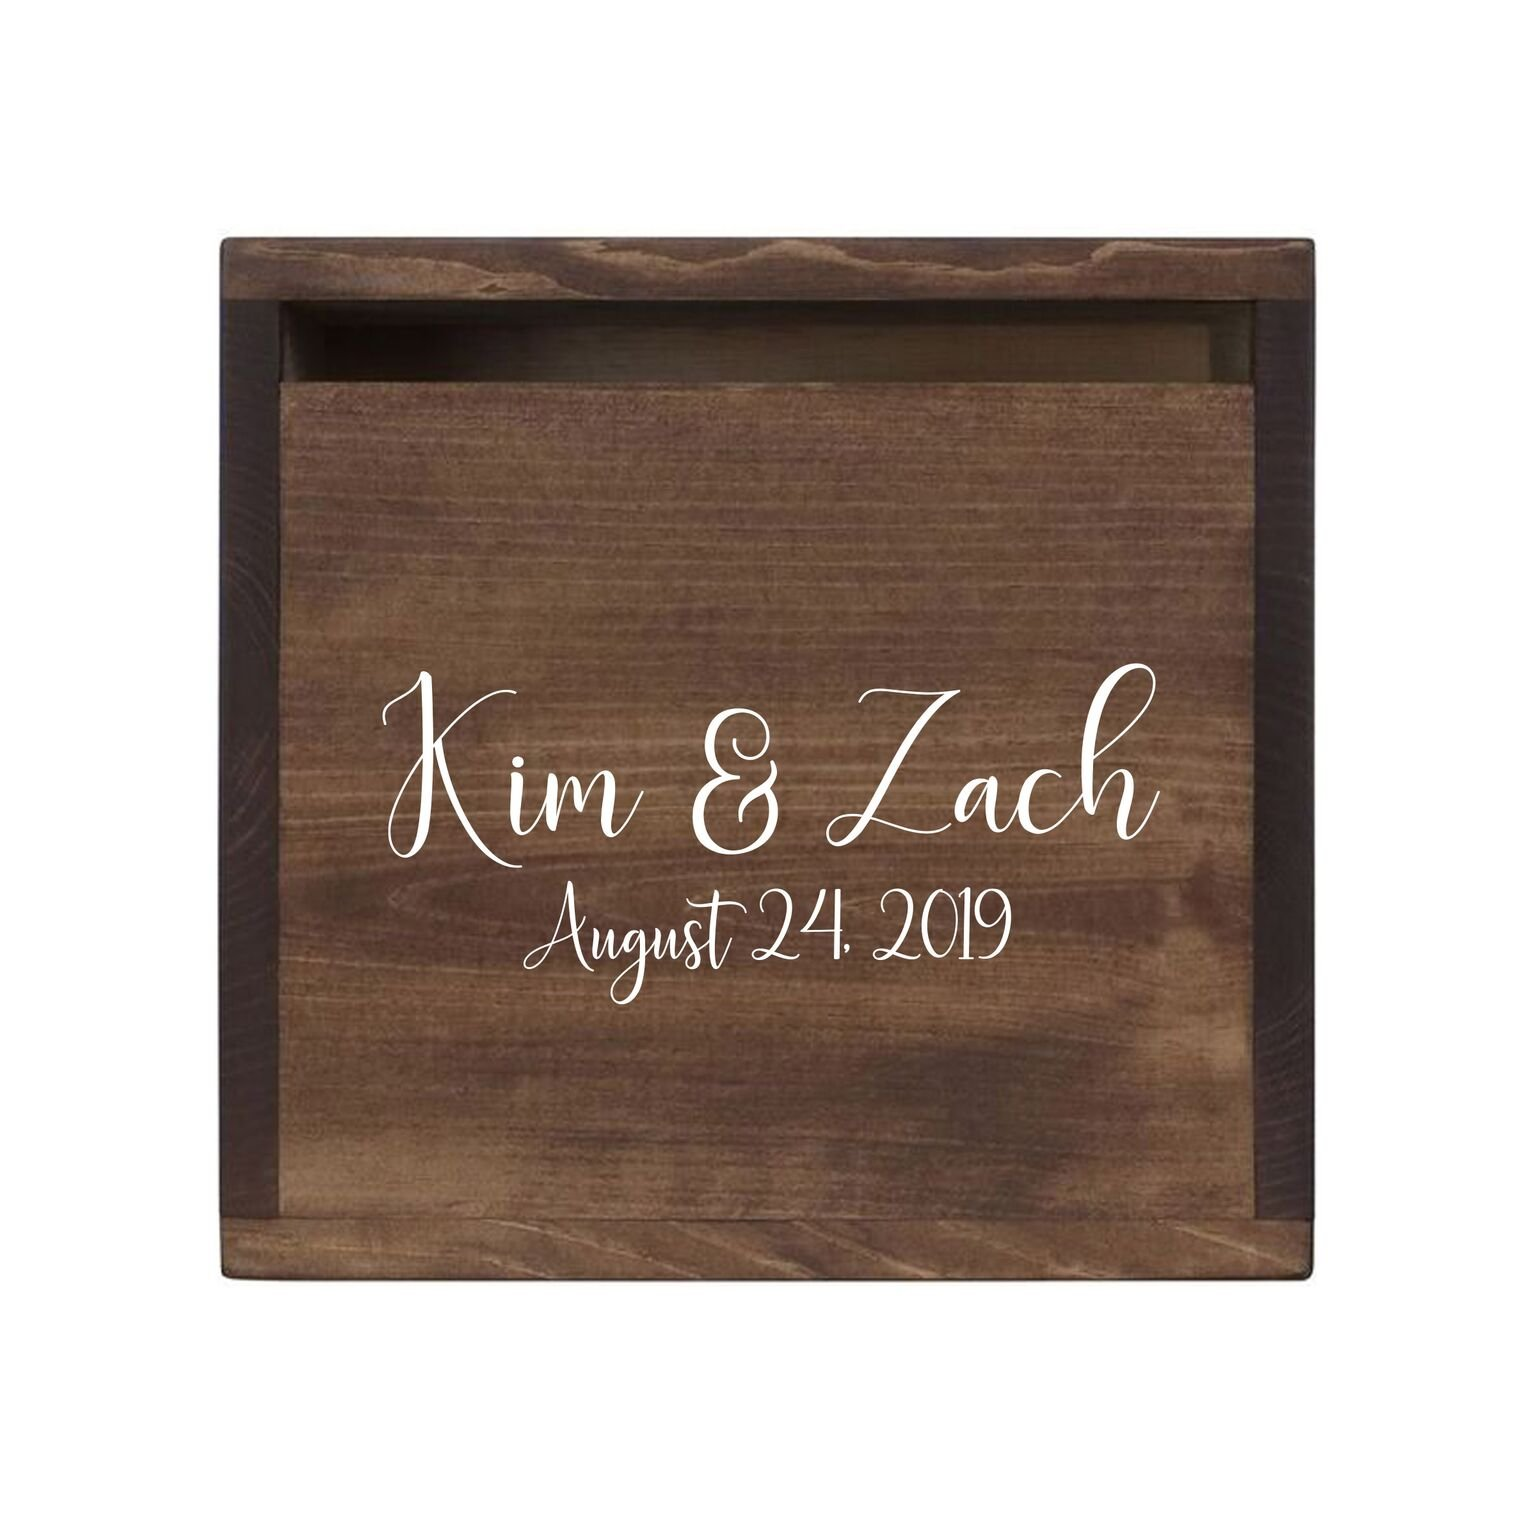 LifeSong Milestones Personalized First Names Rustic Wooden Wedding Card Box Custom Card Holder with Front Slot for Newlyweds Couples Reception 13.5'' L x 12'' W x 12.5'' T (Walnut)